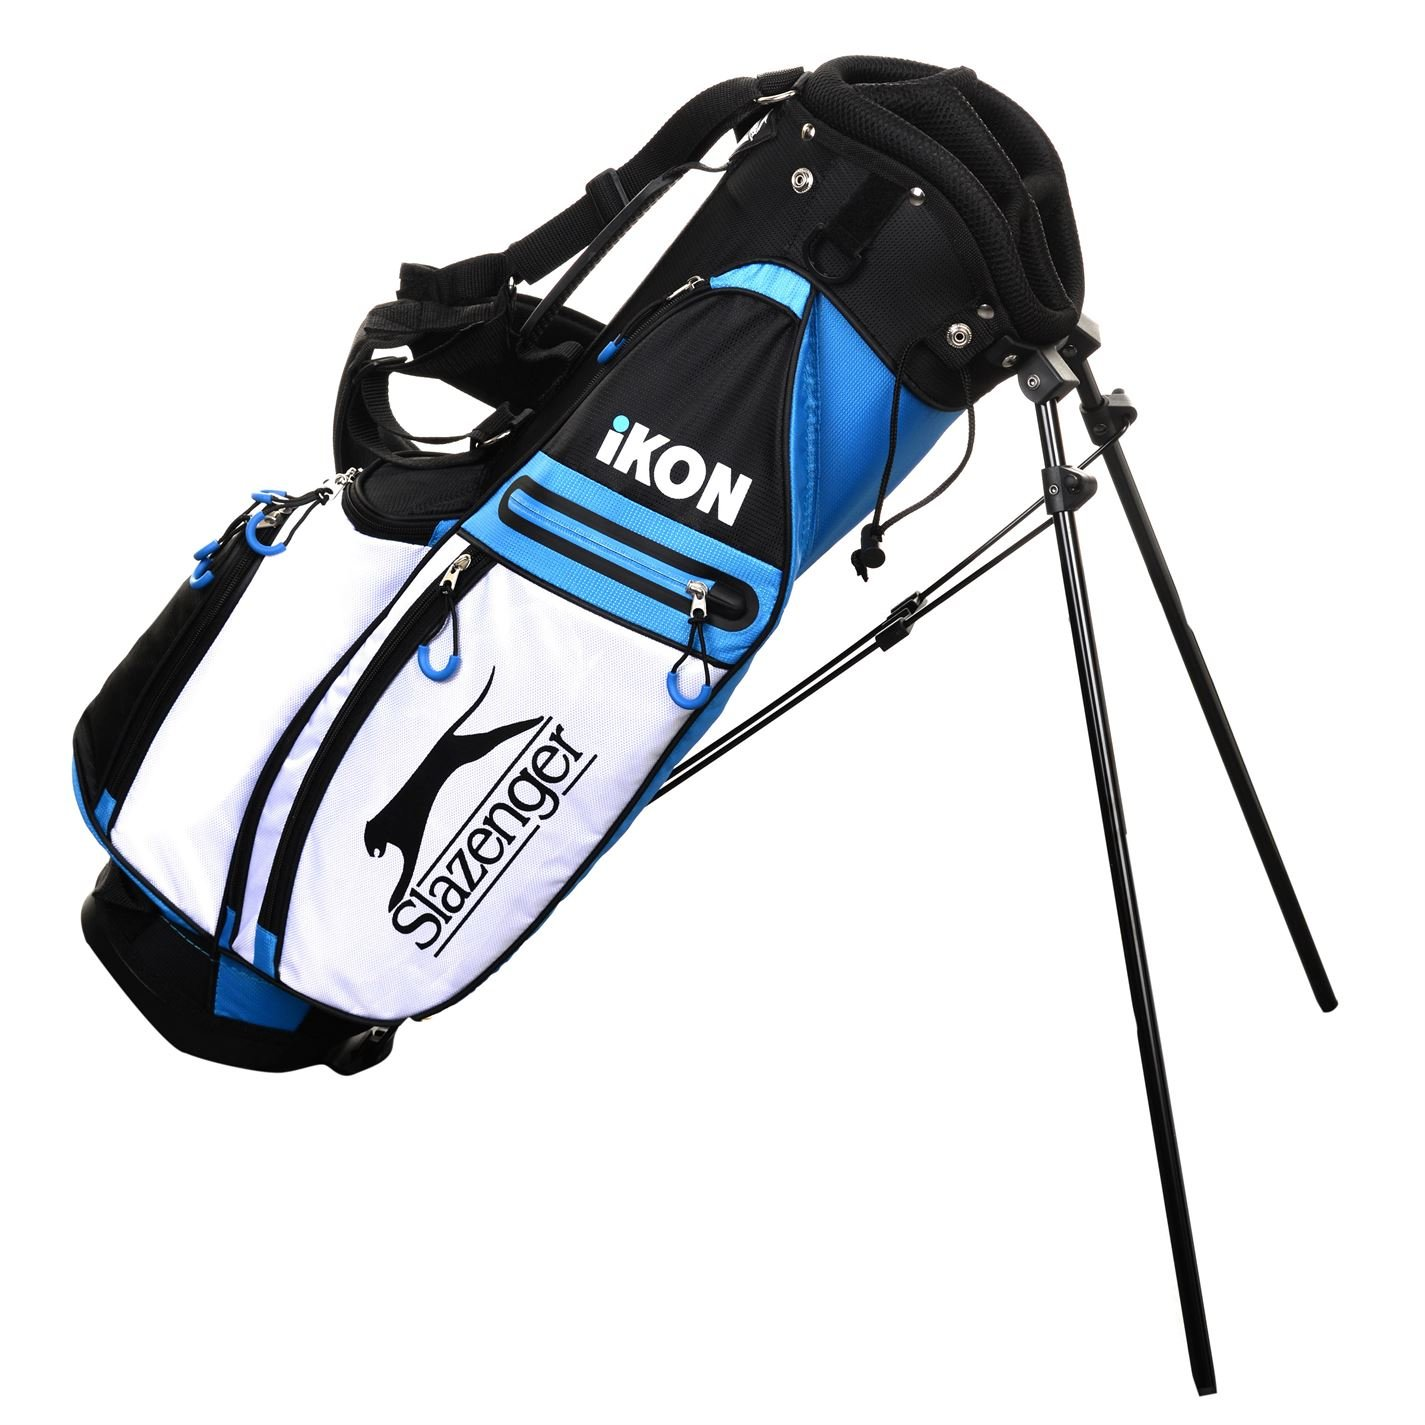 Amazon.com: Slazenger Kids Ikon Stand Bag Junior Golf Black ...